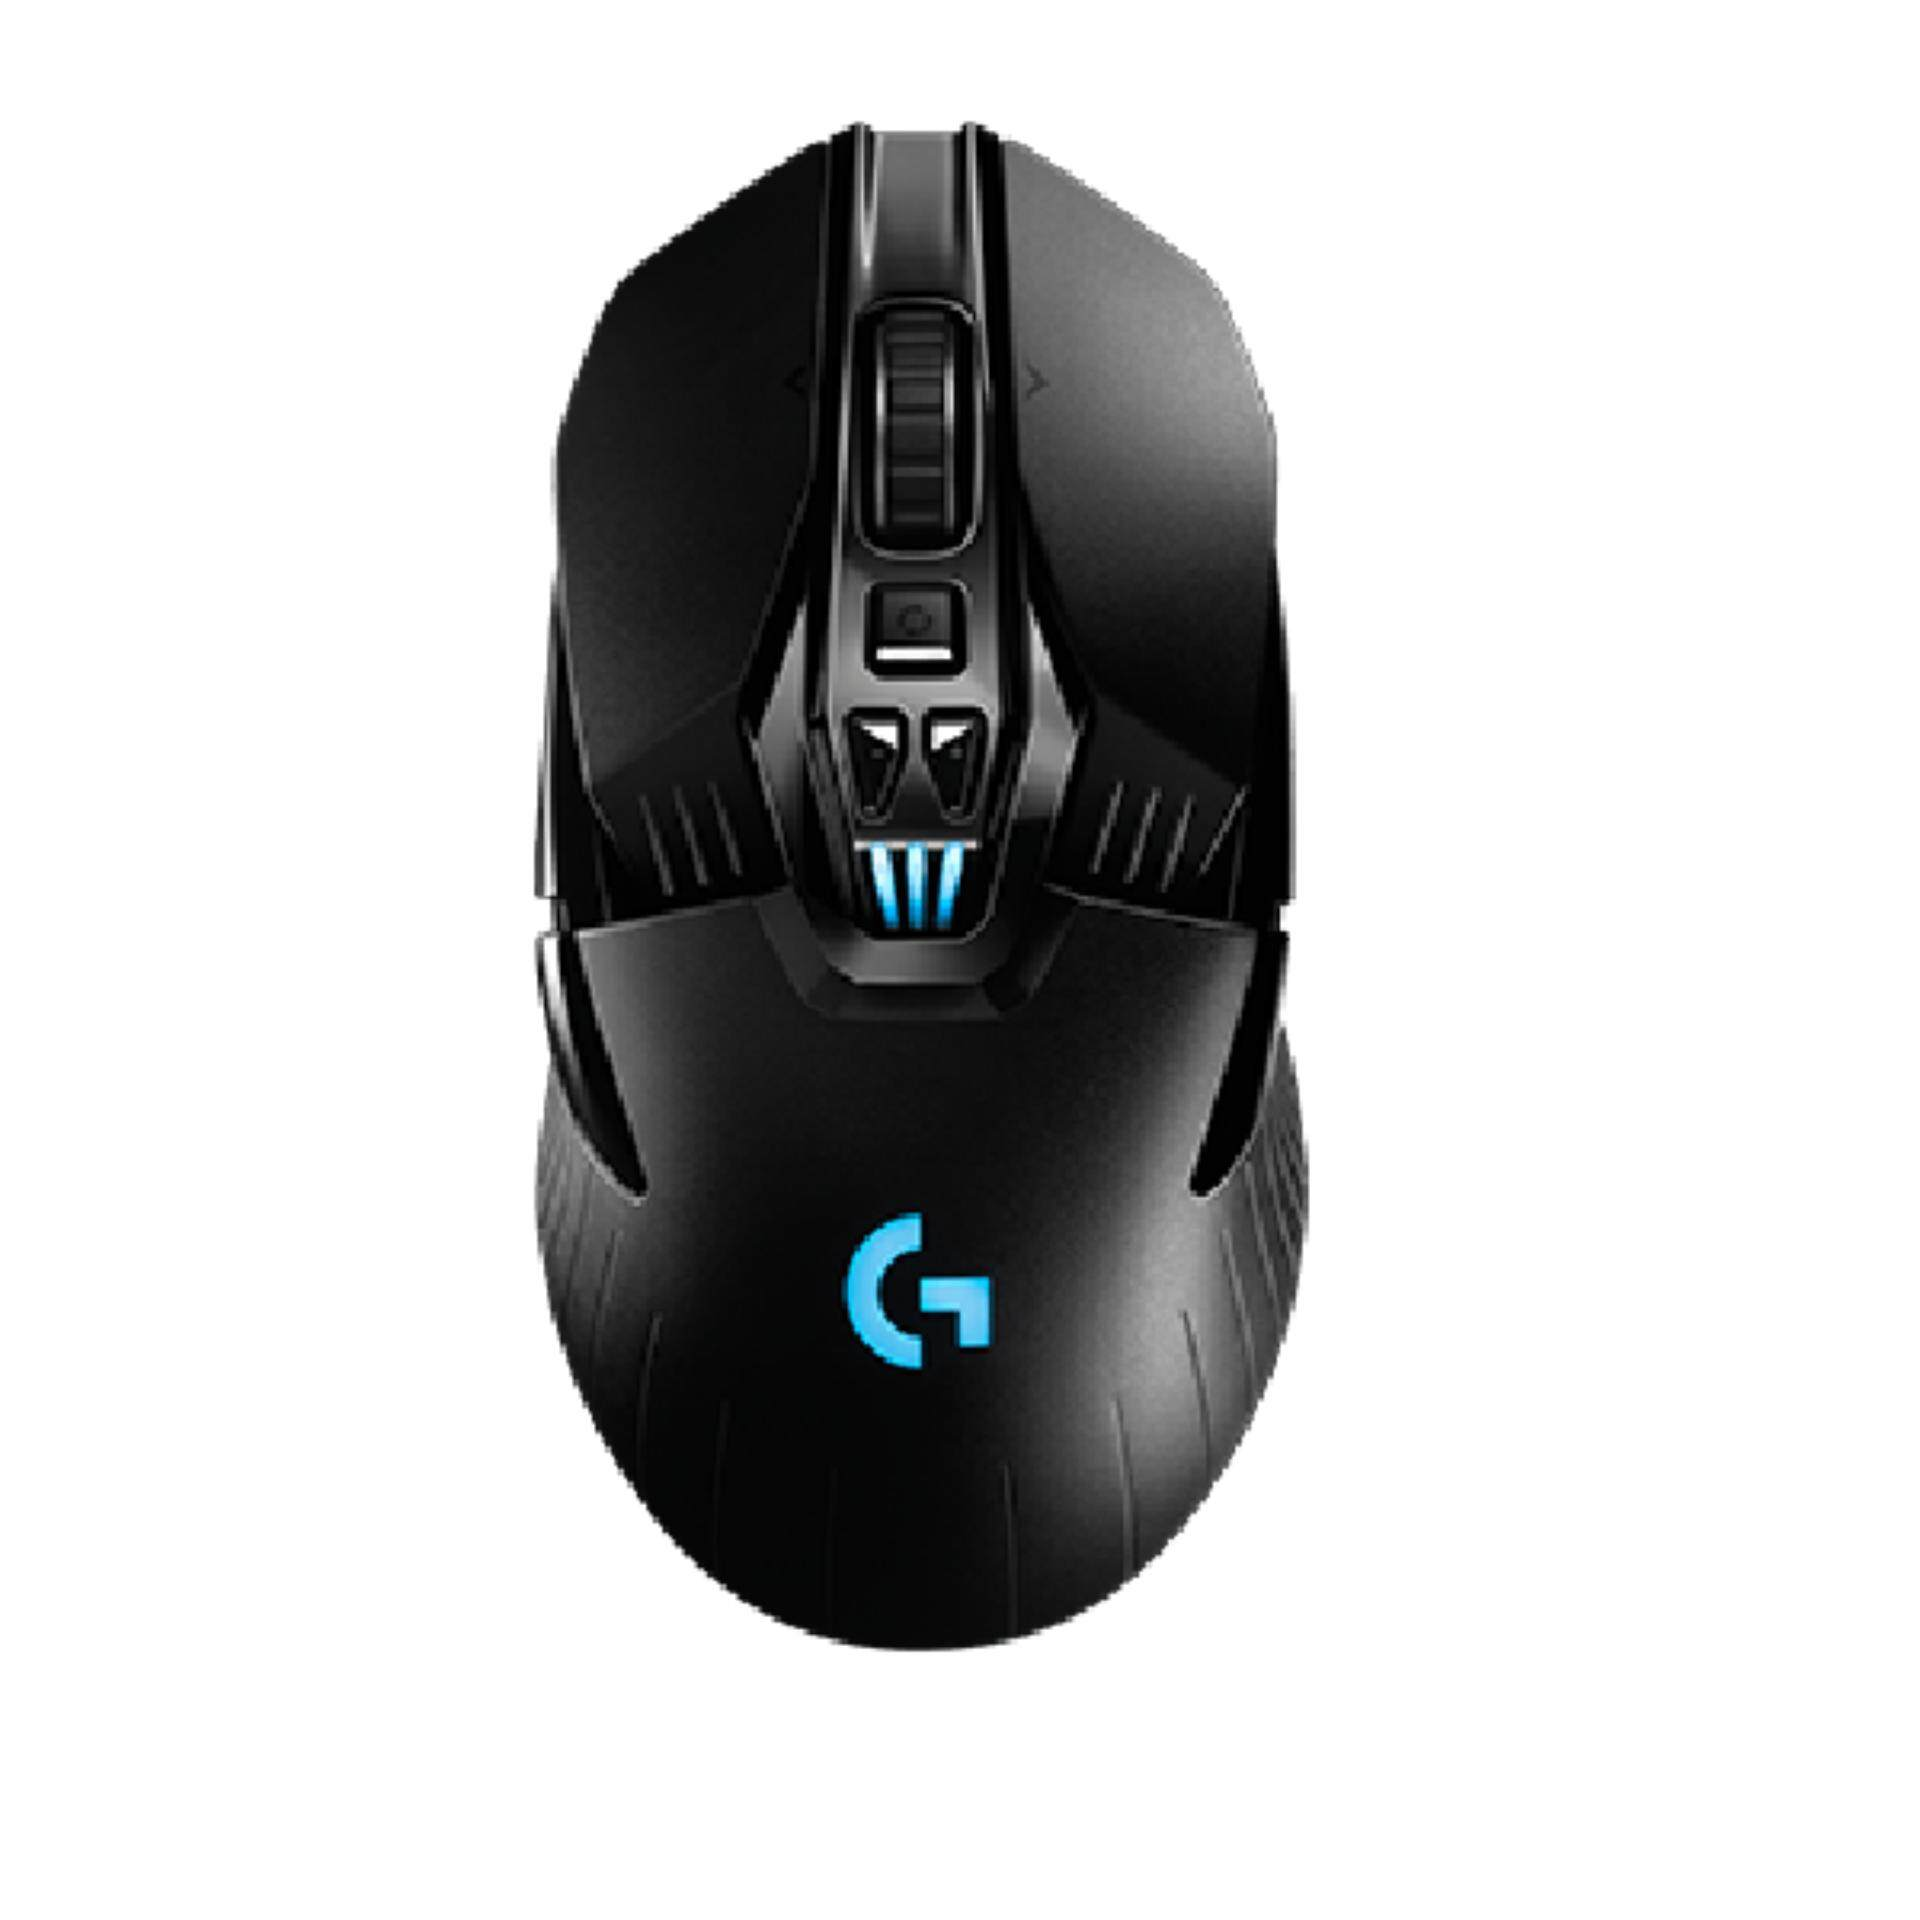 Logitech G900 Chaos Spectrum Professional-grade Gaming Mouse Malaysia